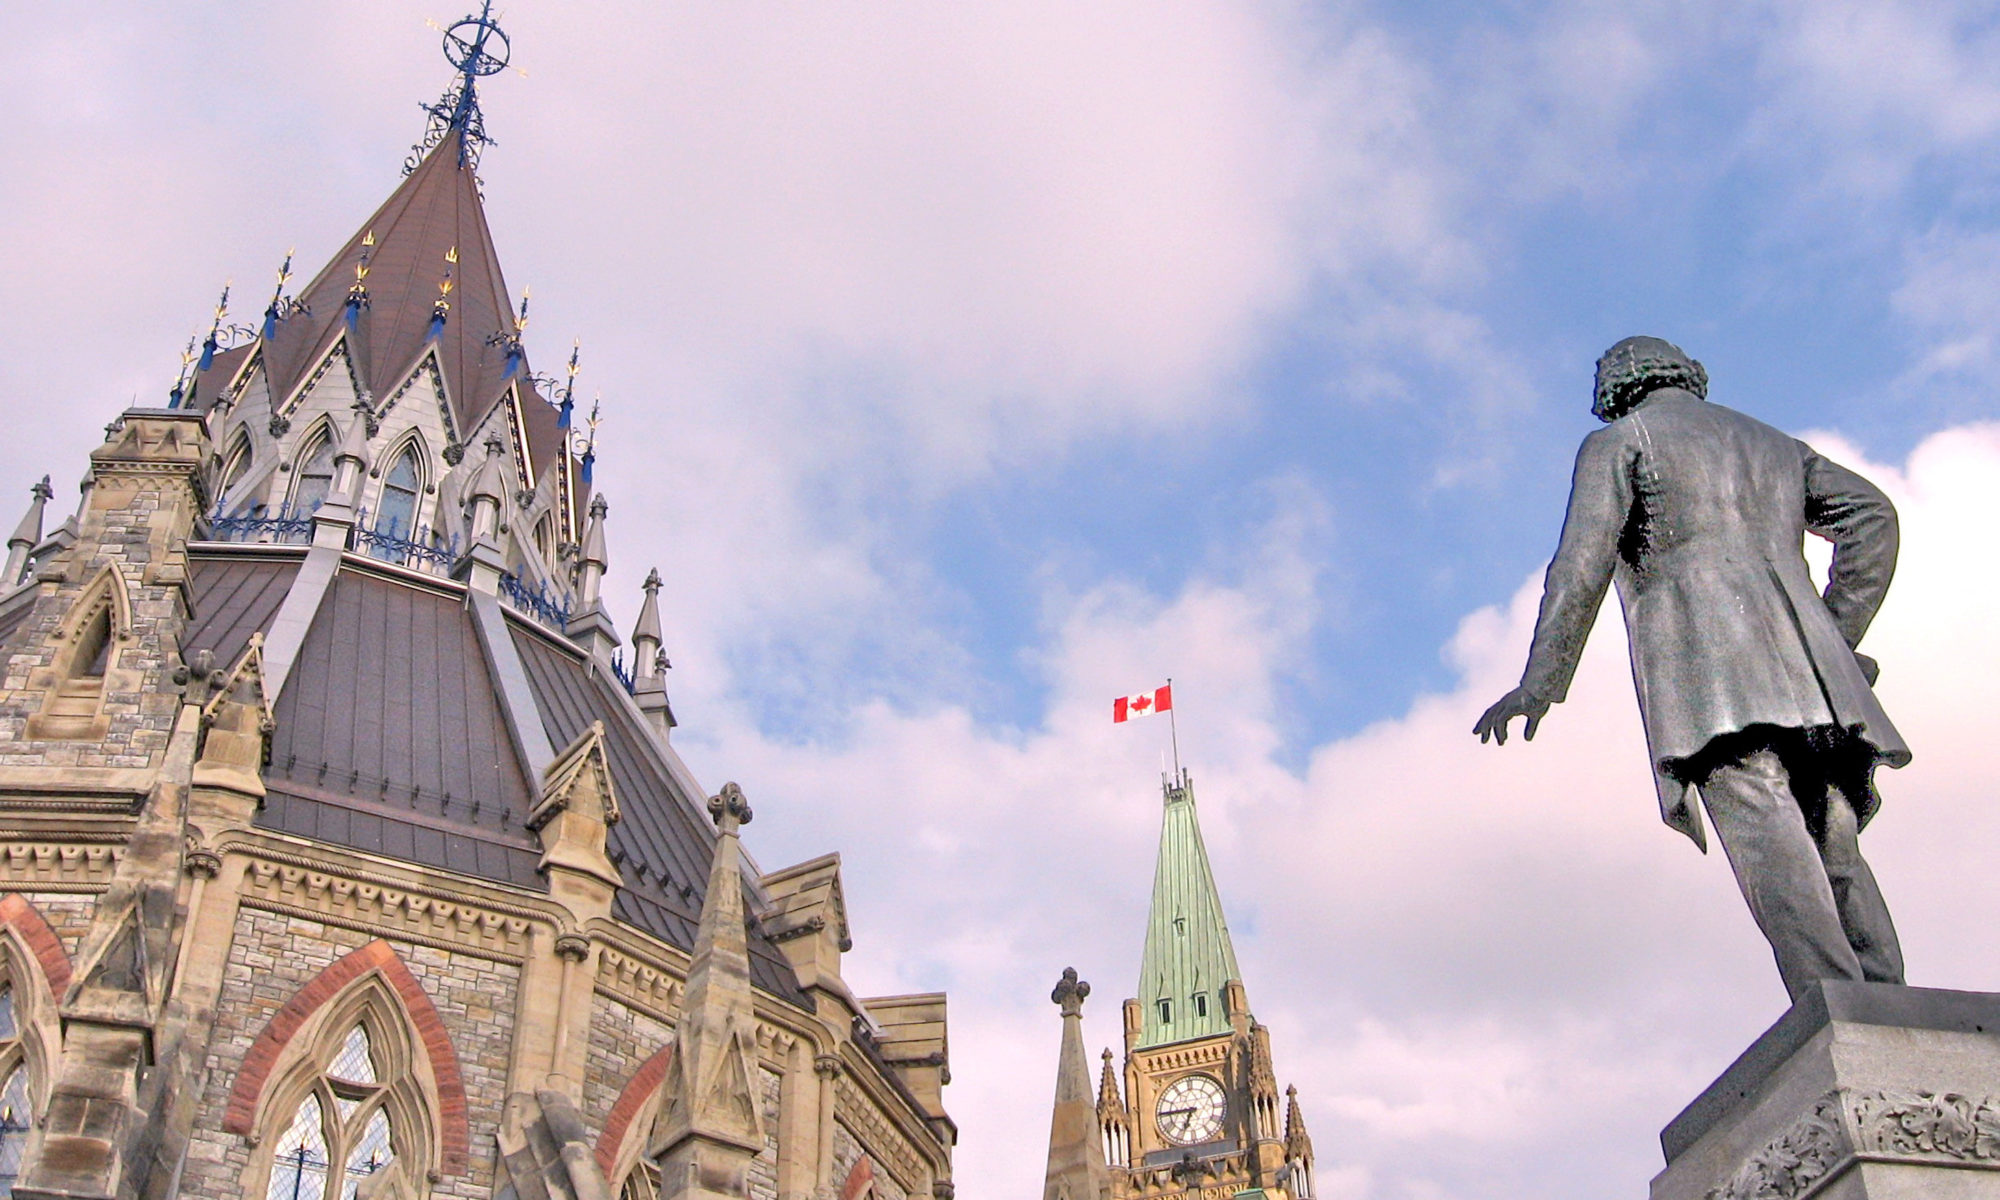 Parliament Hill with a focus on the library